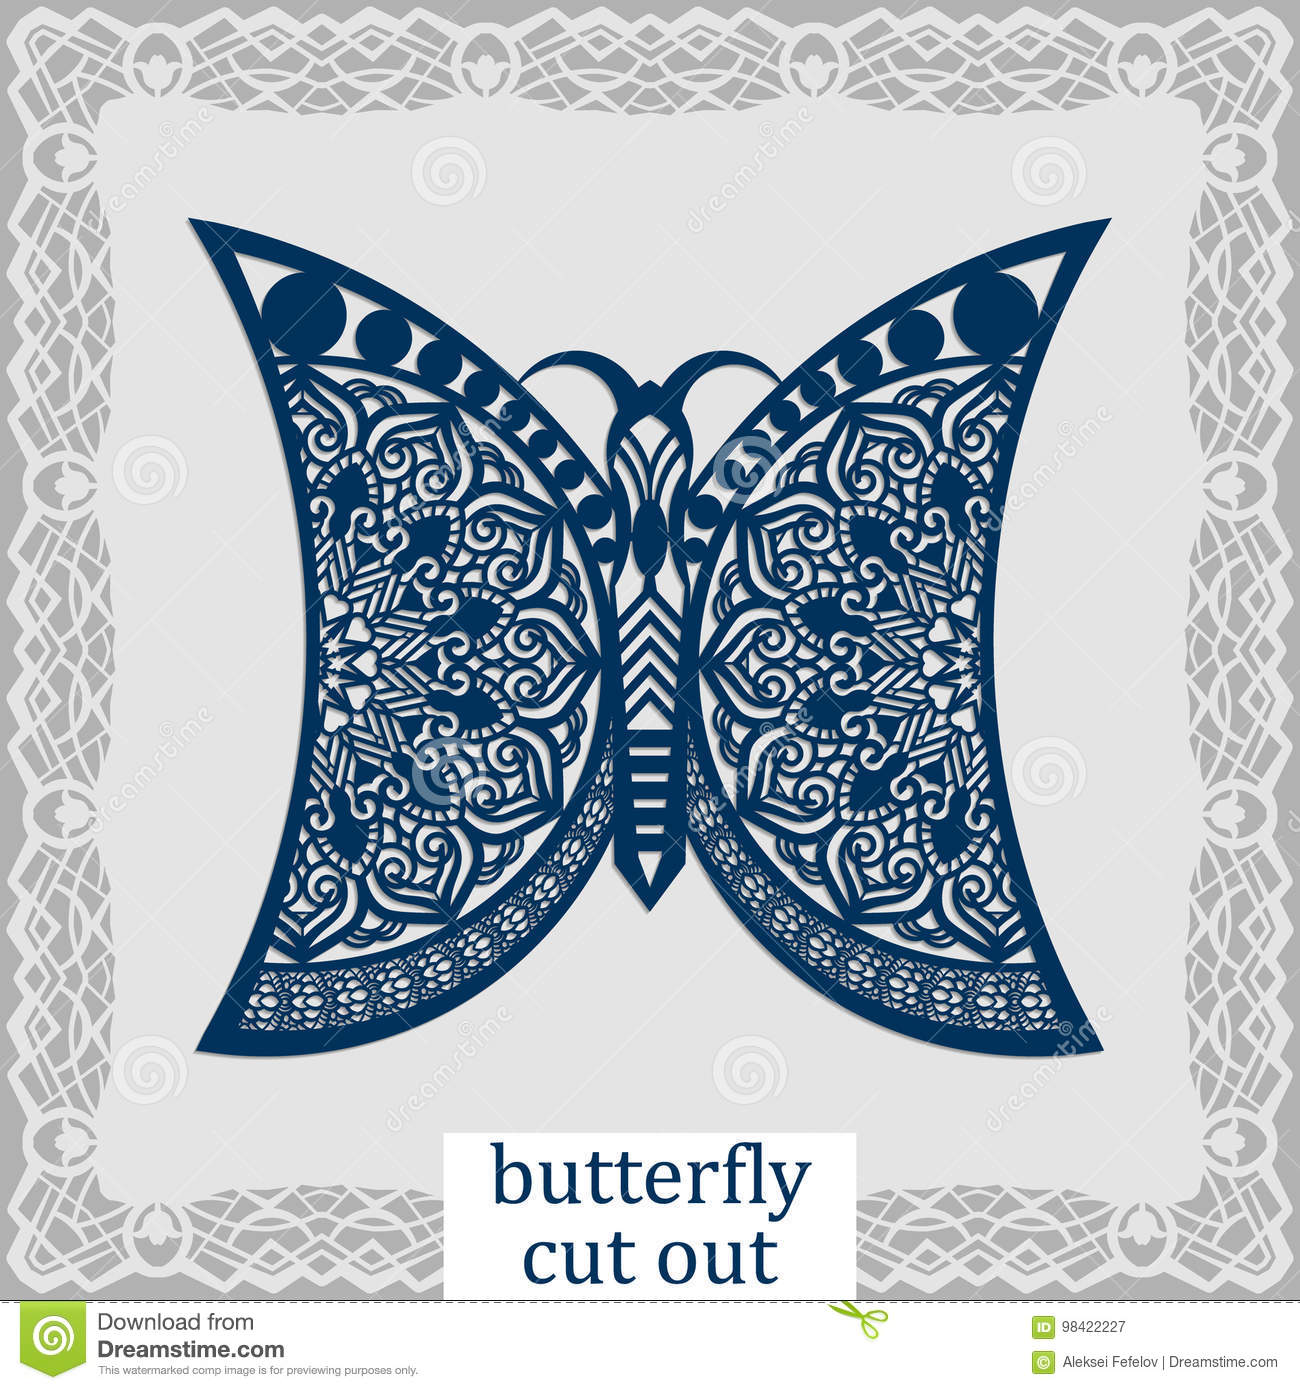 Butterfly - A Template For Laser Cutting. Design Element For A Wedding,  Romantic Meeting Or Greeting Card. Can Be Used As A Decor